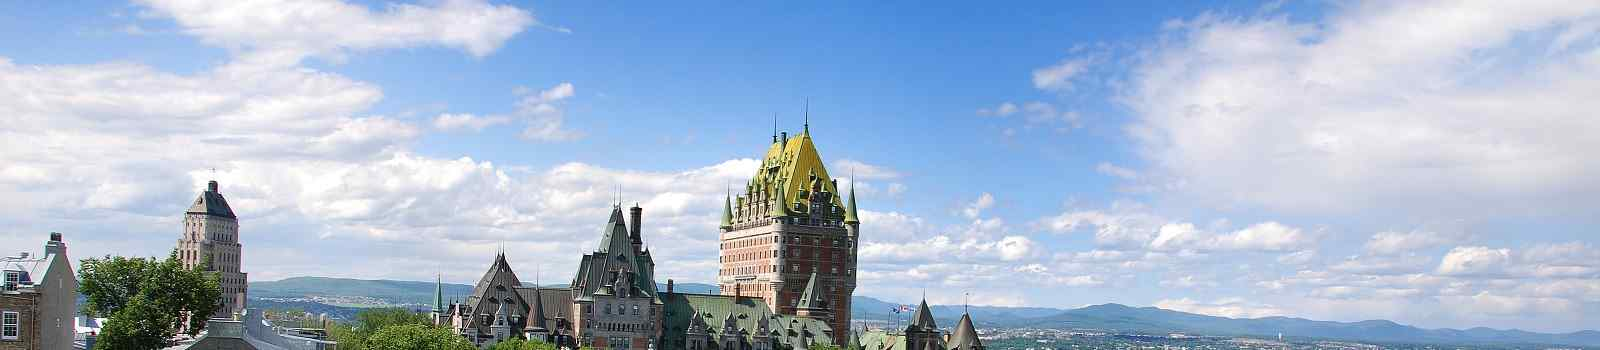 PARKS-EAST -Kanada Quebec City View of old Quebec and the Ch�teau Frontenac